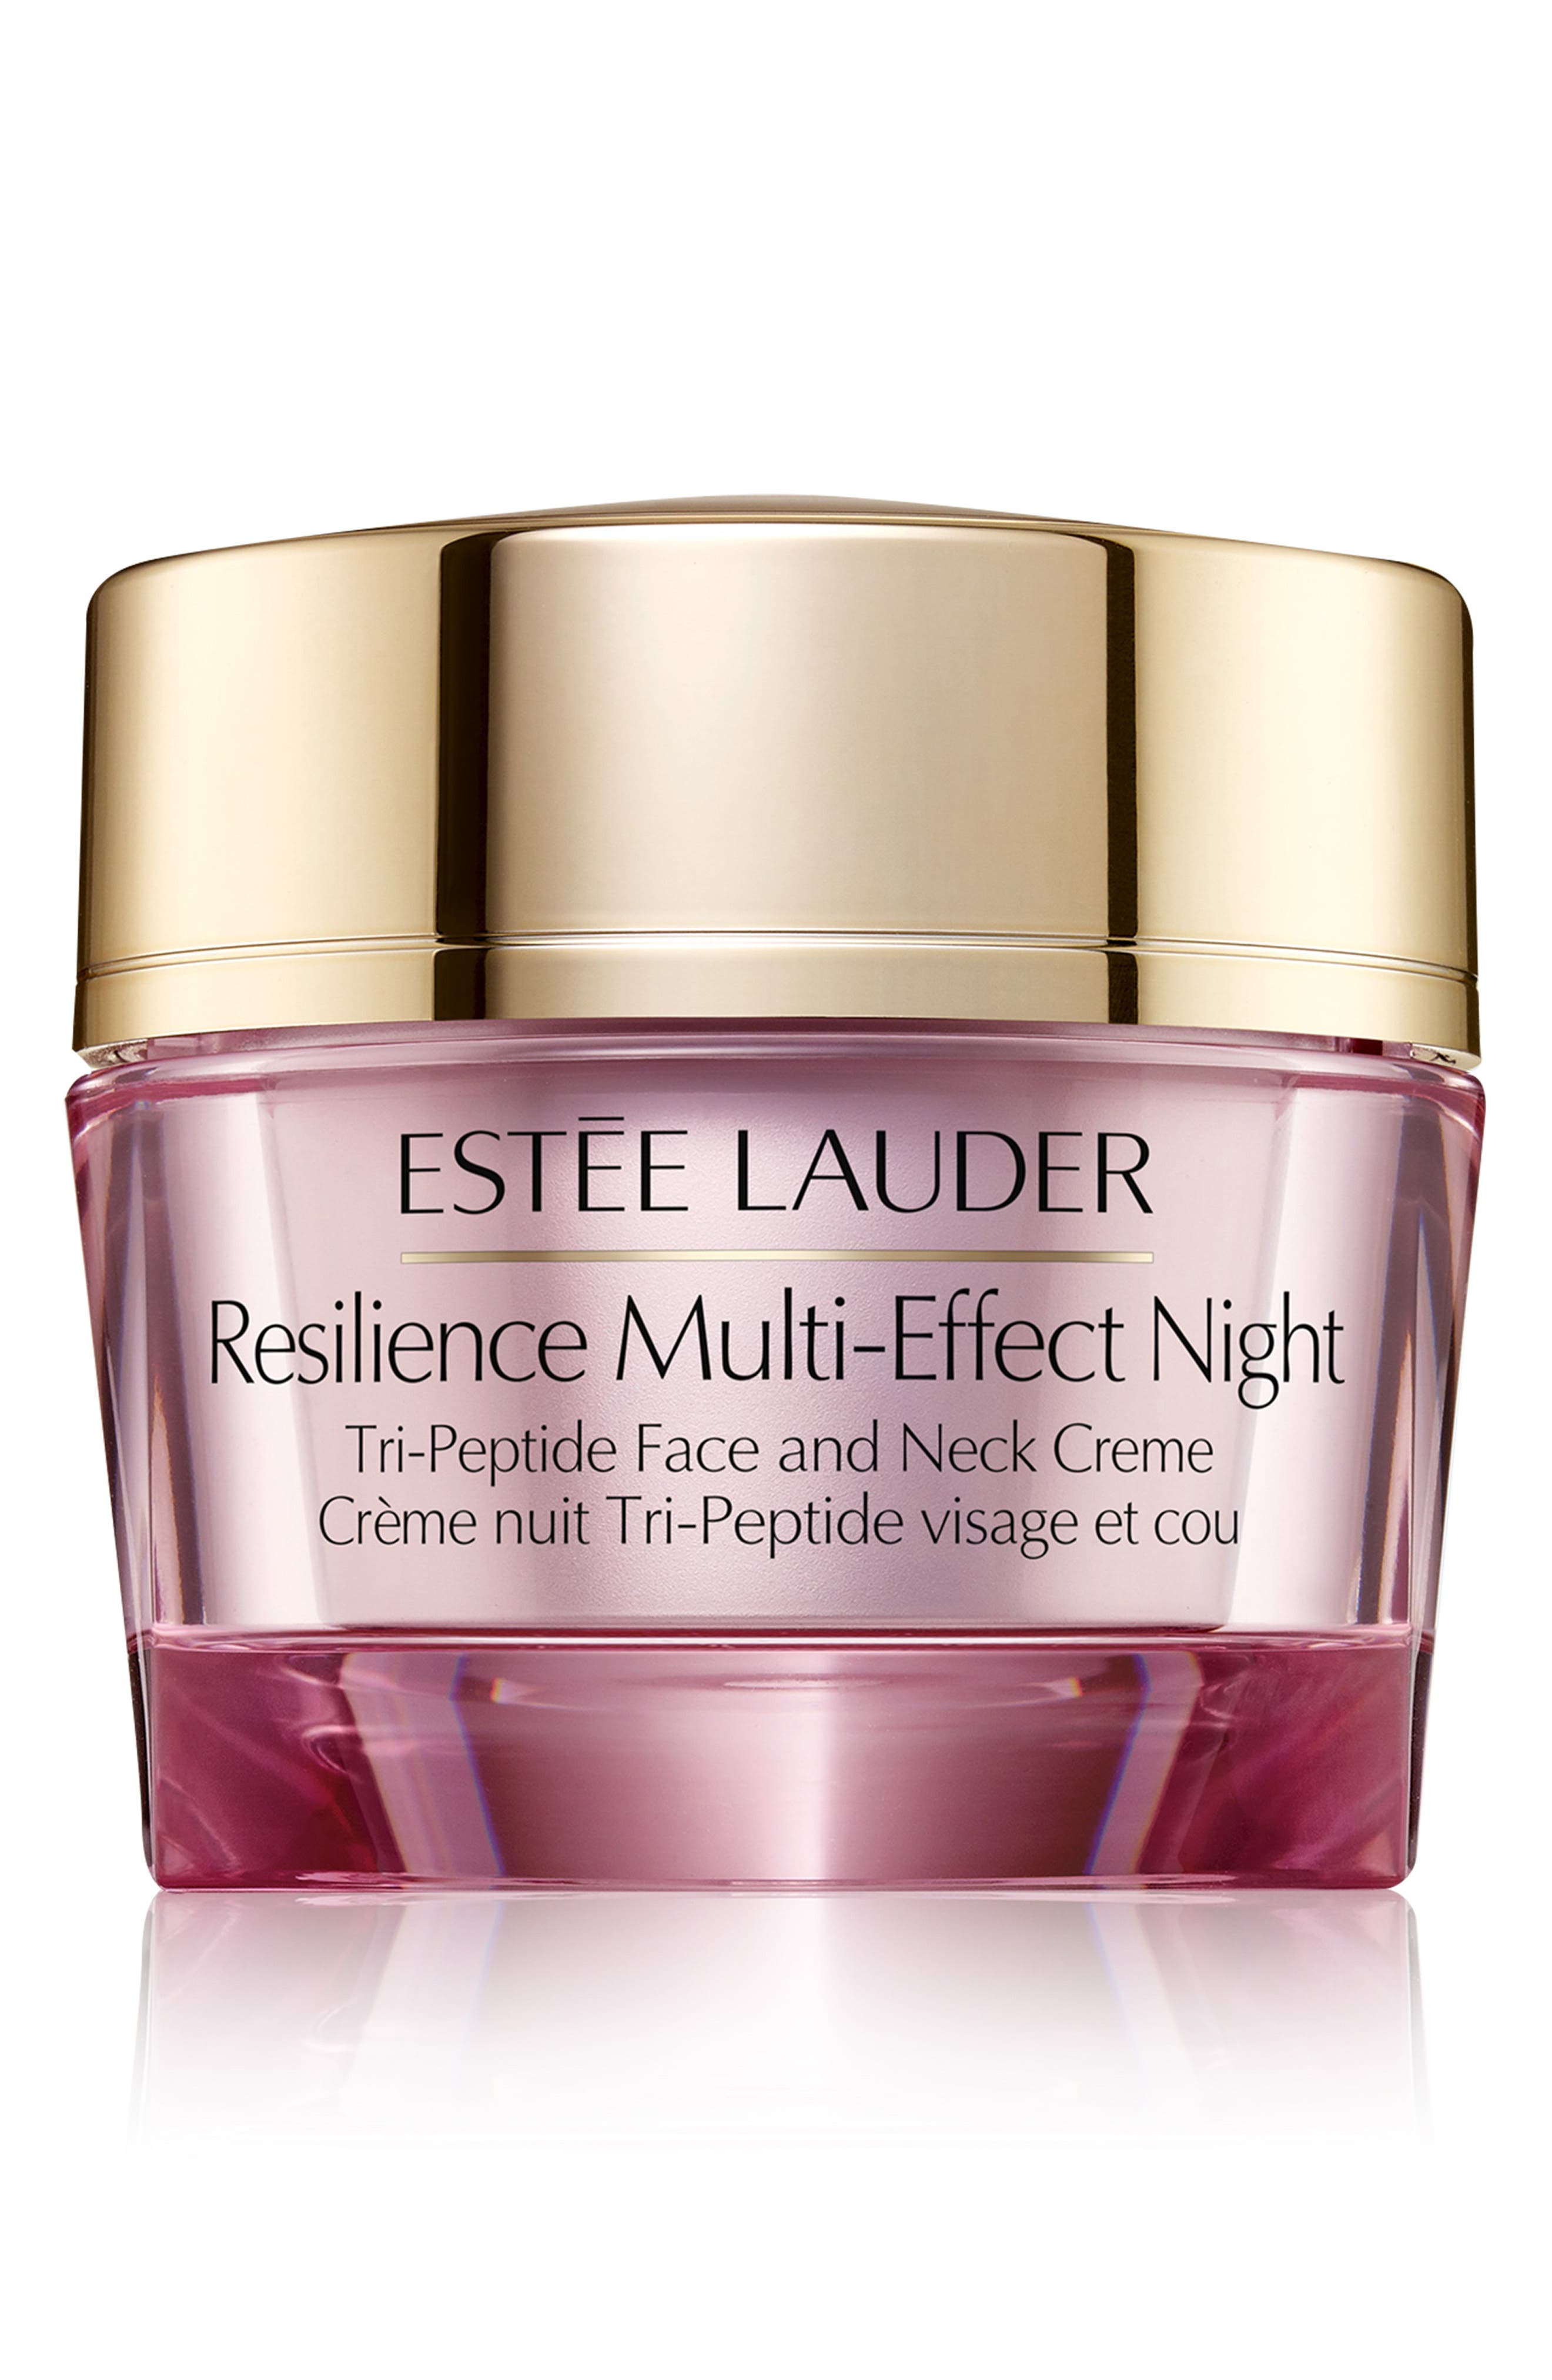 ESTÉE LAUDER, Resilience Multi-Effect Night Tri-Peptide Face and Neck Creme, Main thumbnail 1, color, NO COLOR